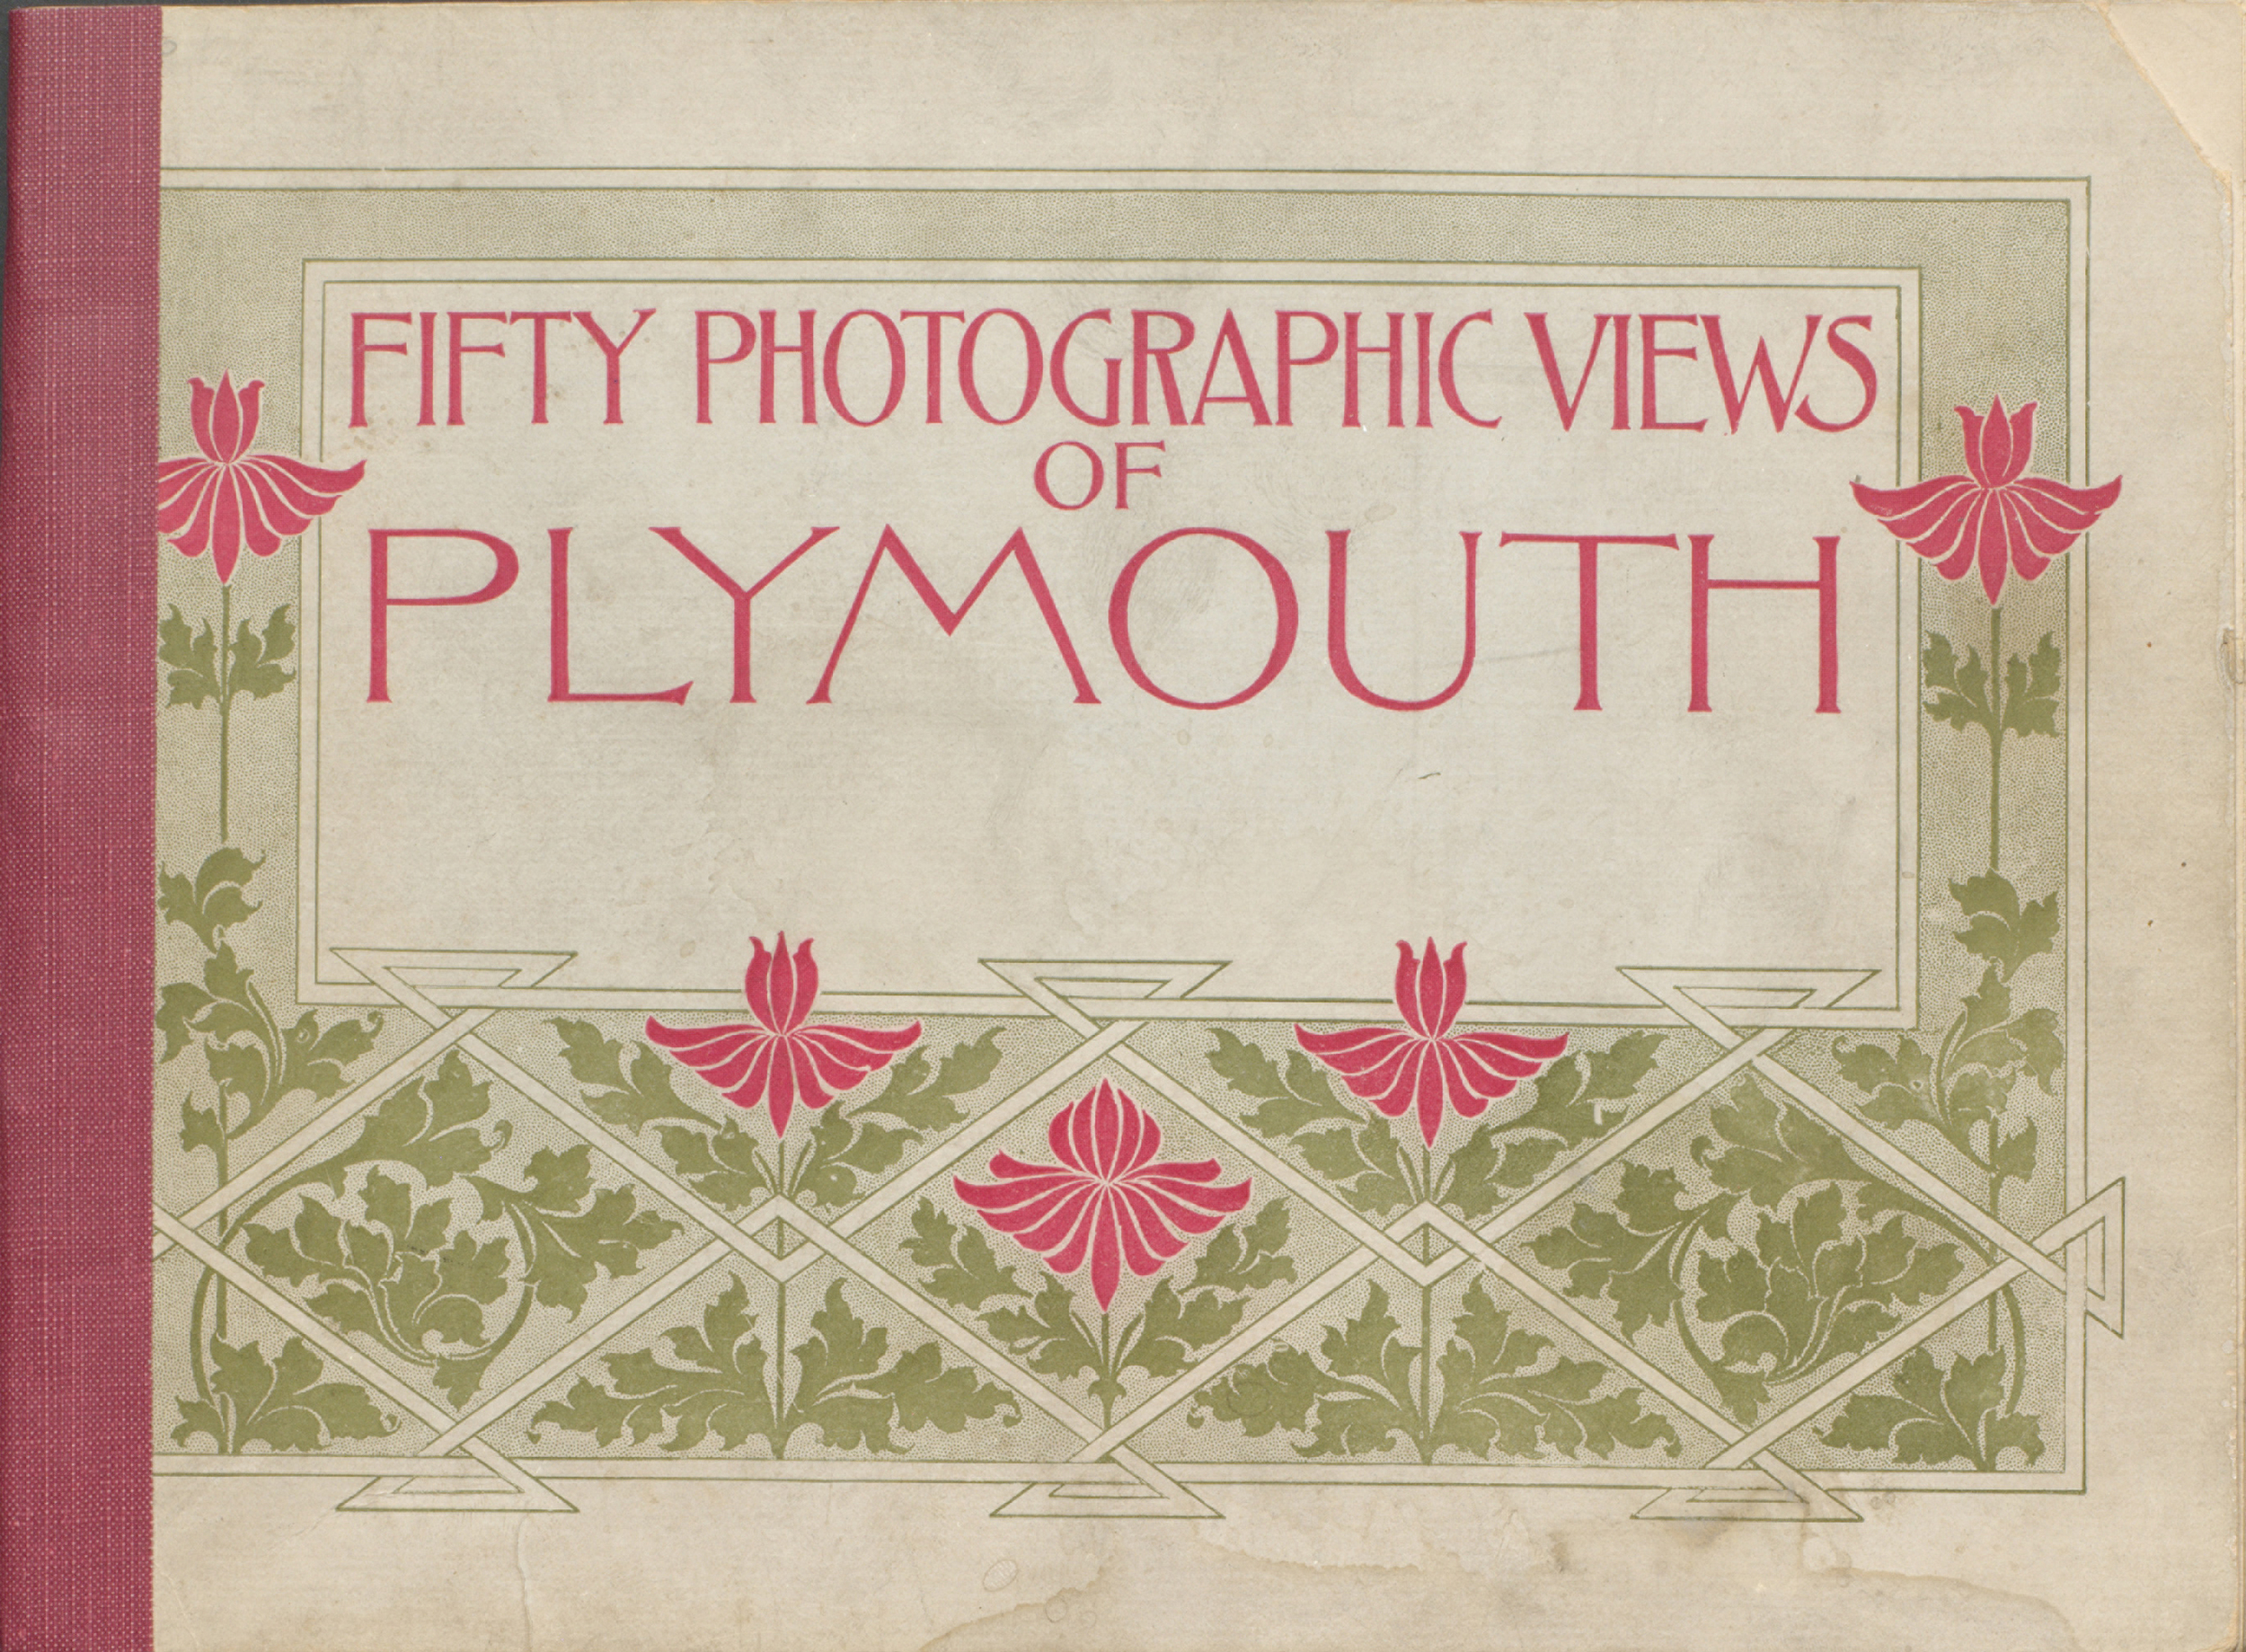 Fifty photographic views of Plymouth. Cover.